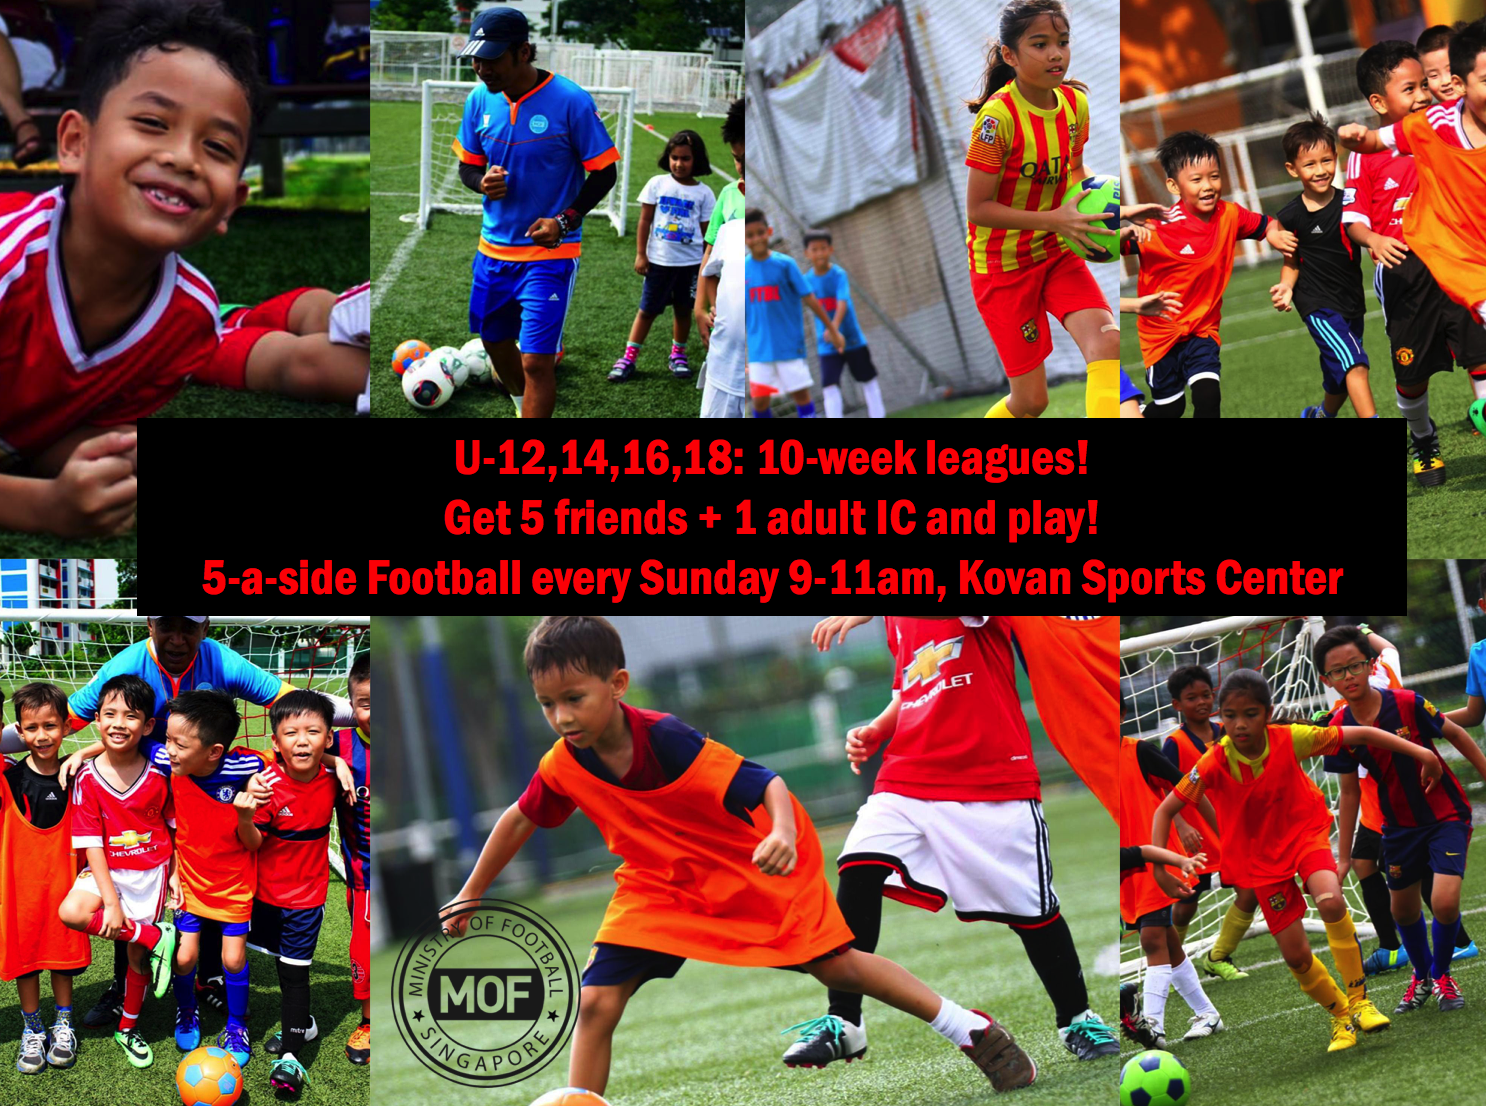 U12 14 16 18 5-a-side leagues1